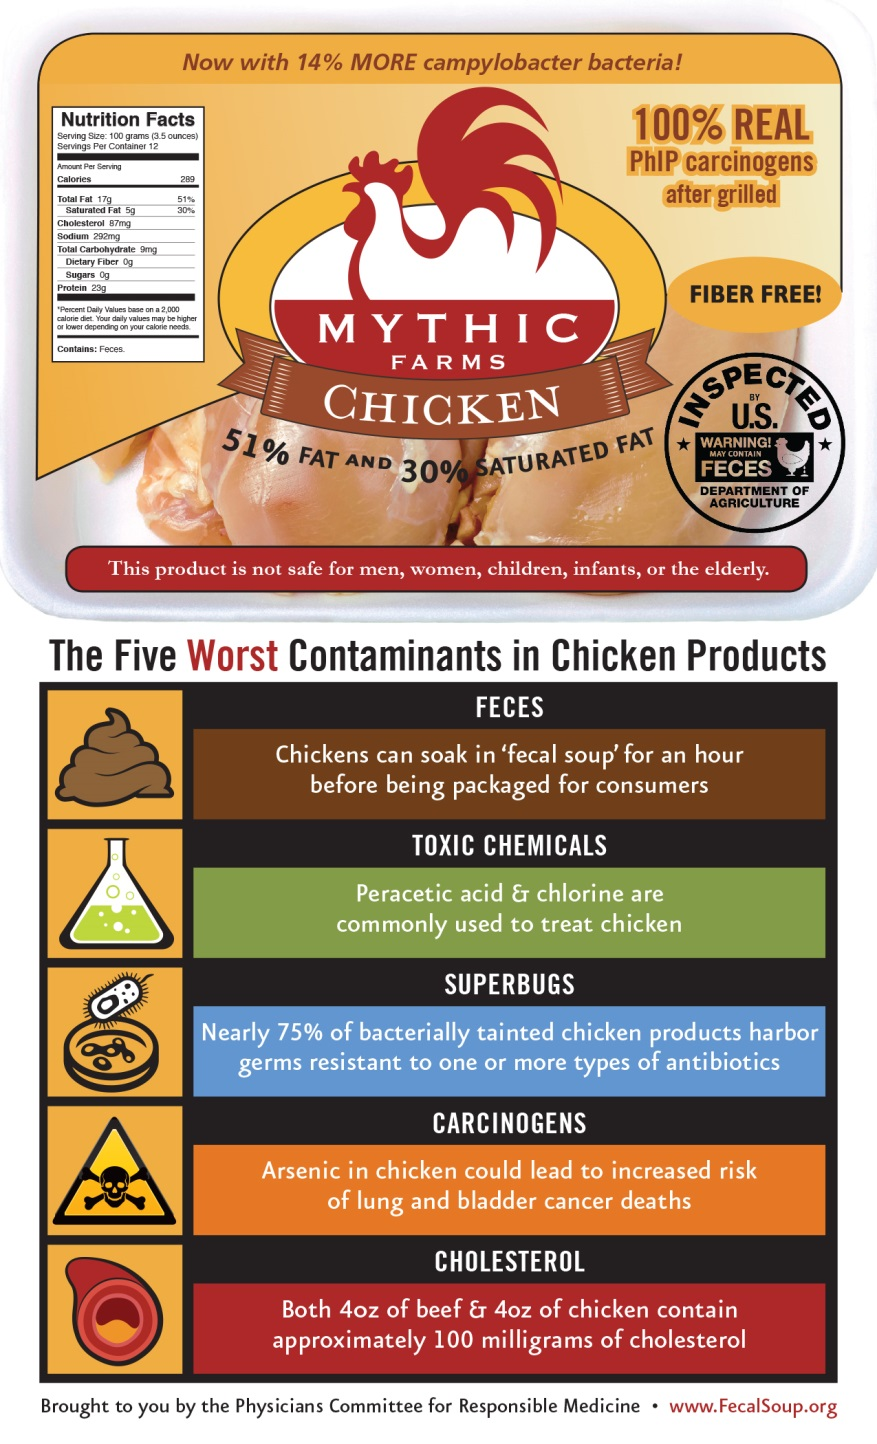 The Five Worst Contaminants in Chicken Products